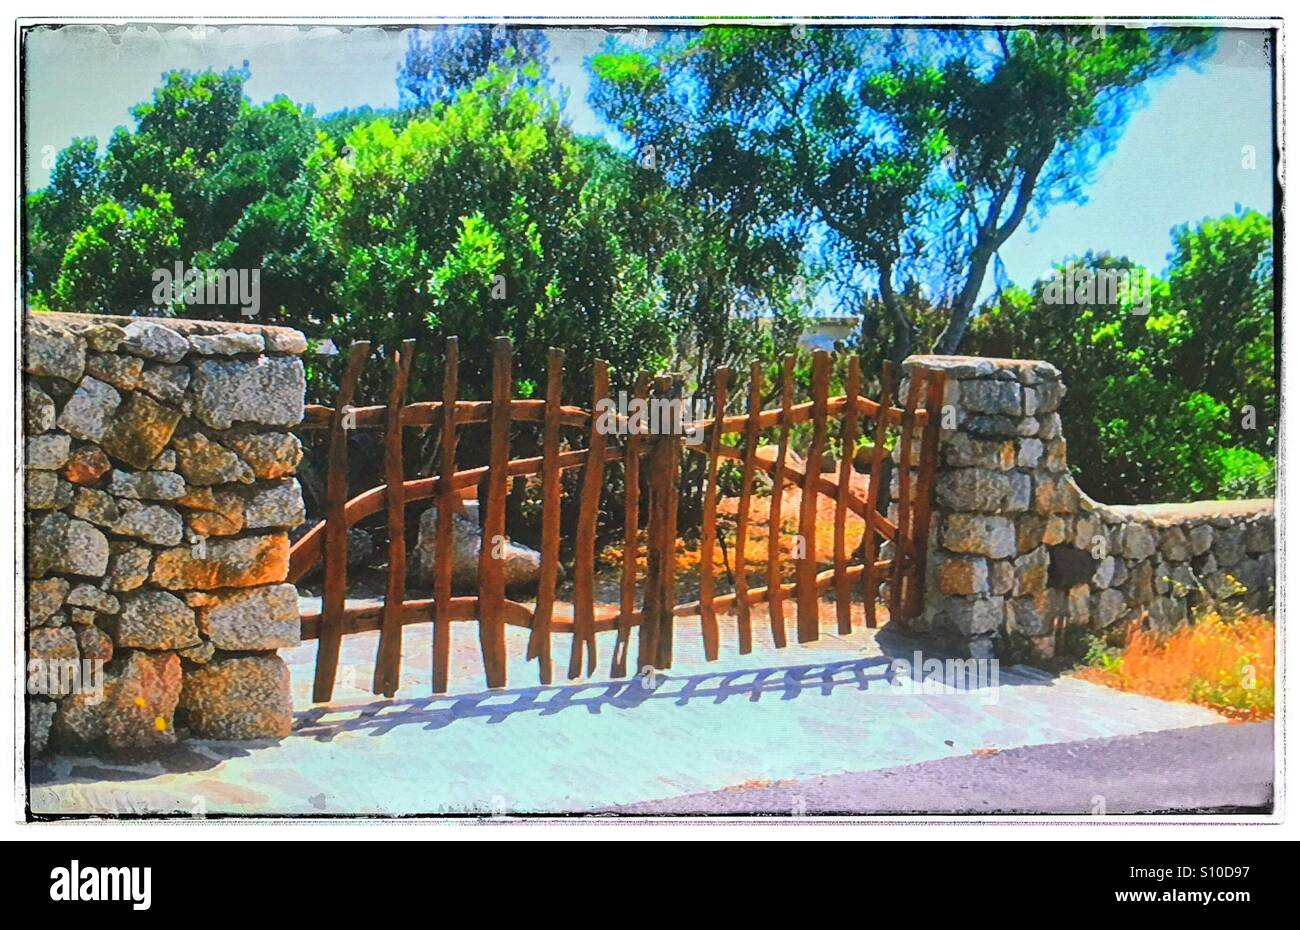 Wooden fence across private driveway - Stock Image